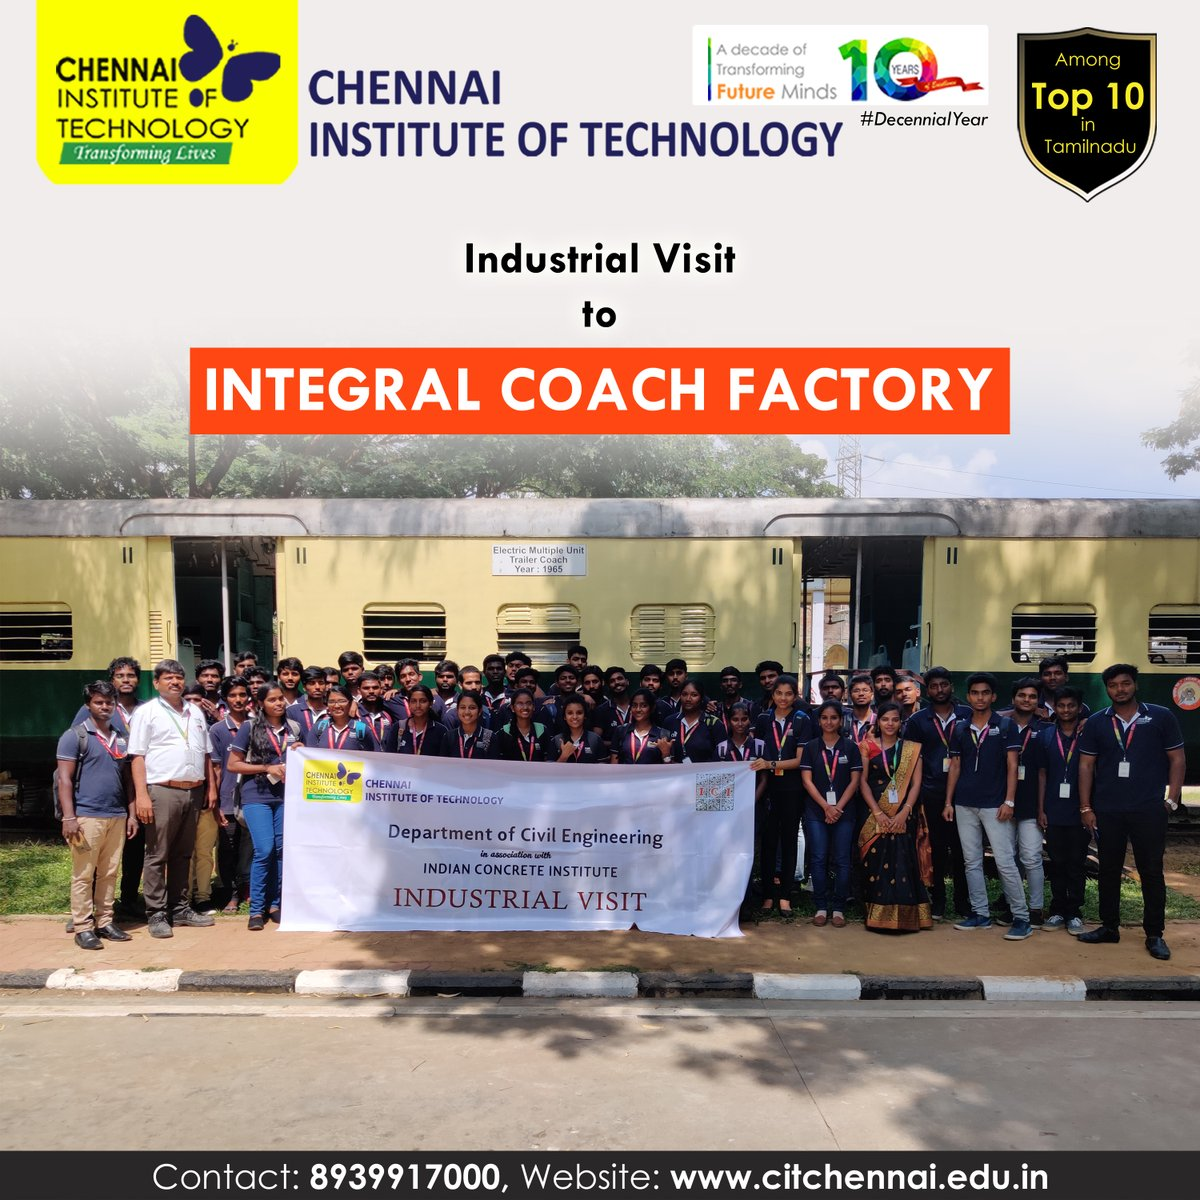 Industrial Visit to Integral Coach Factory organised for Third Year Students by Department of Civil Engineering on 11th Feb, 2020  #IndustryConnectedInstitute #IndustrialVisit #ChennaiInstituteofTechnology #CITChennai #TransformingLives #Engineering #enjoyableCampusLifepic.twitter.com/AcDE0BBMrP